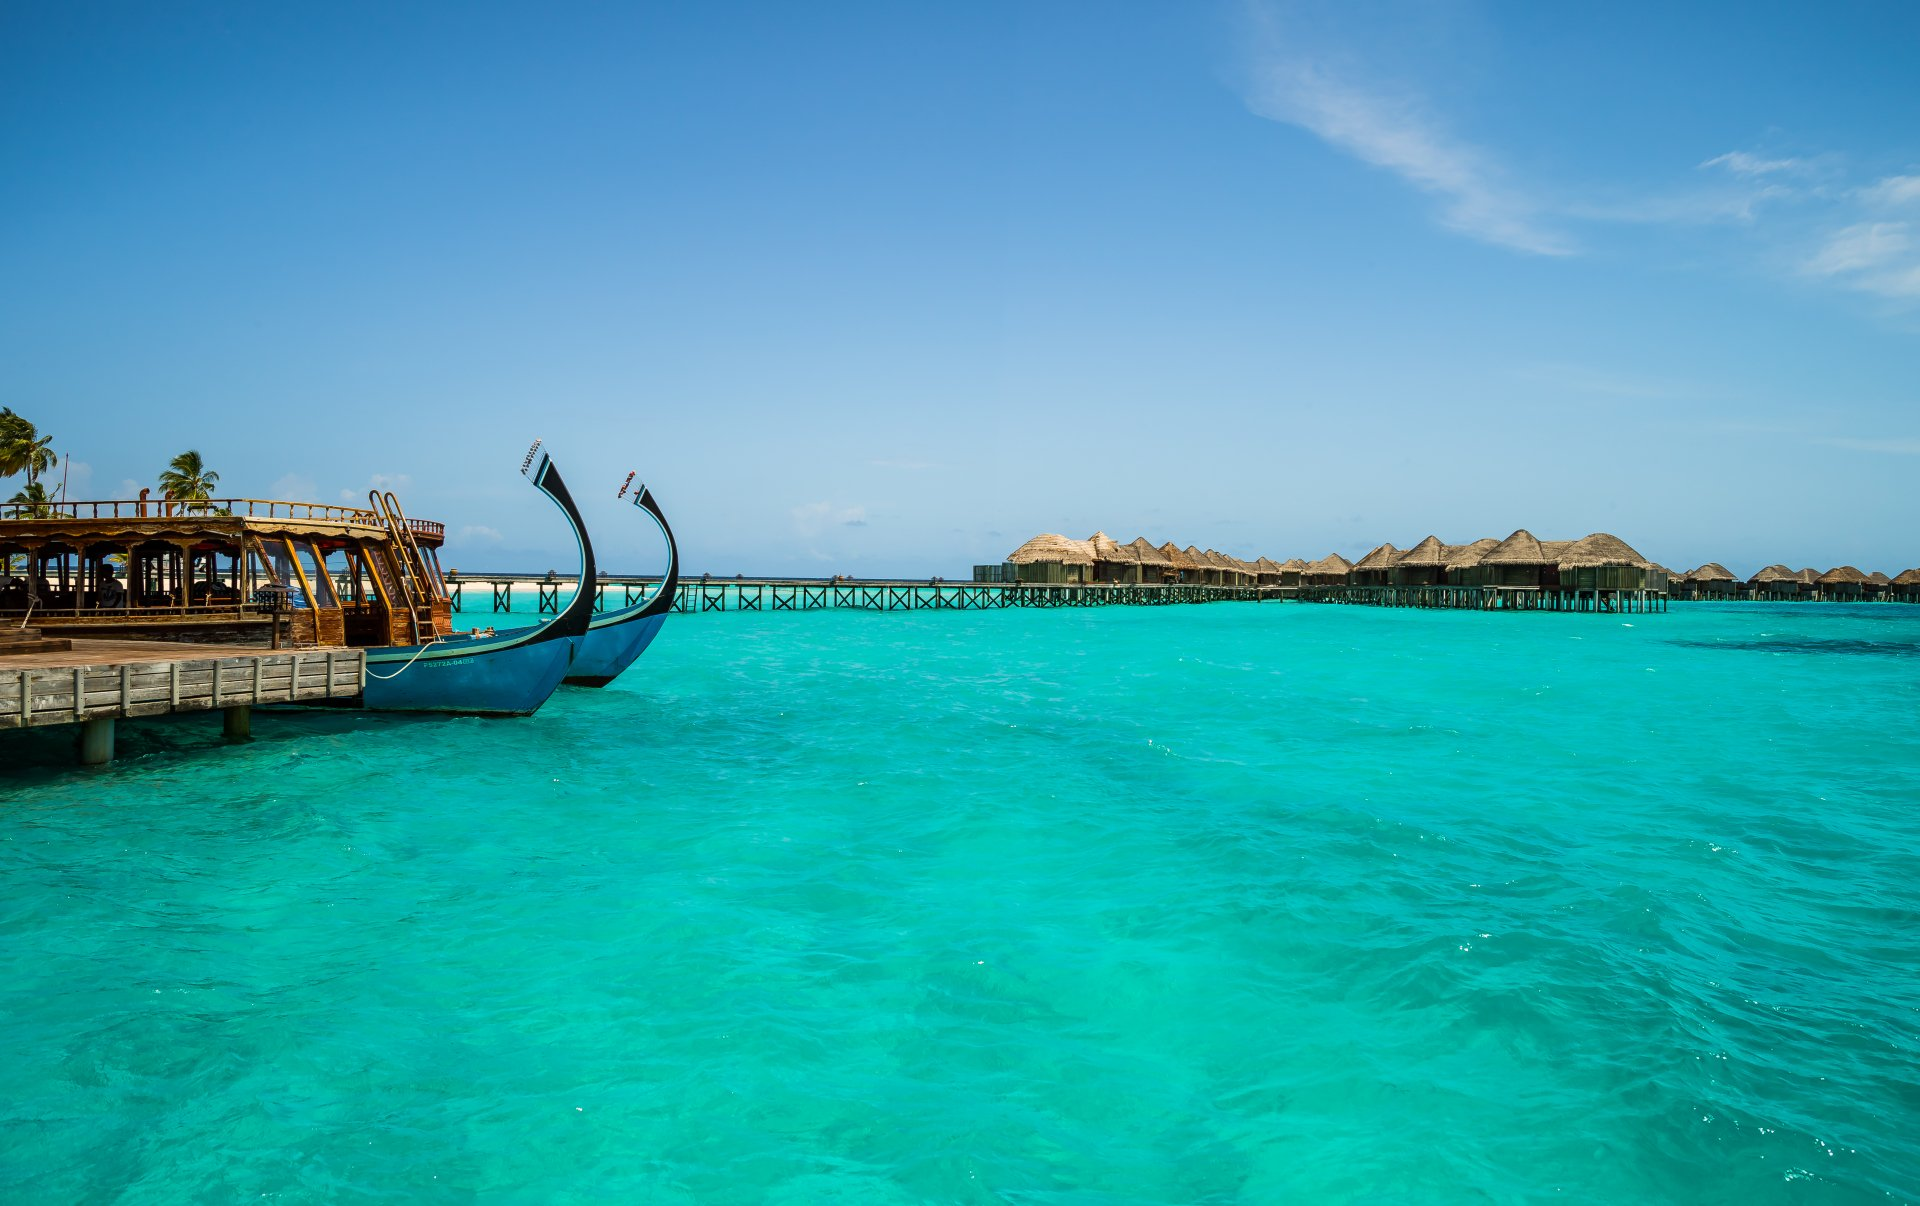 Photography - Tropical  Lagoon Seaside Sea Boat Pier Hotel Resort Tropics Maldives Constance Halaveli Resort Wallpaper